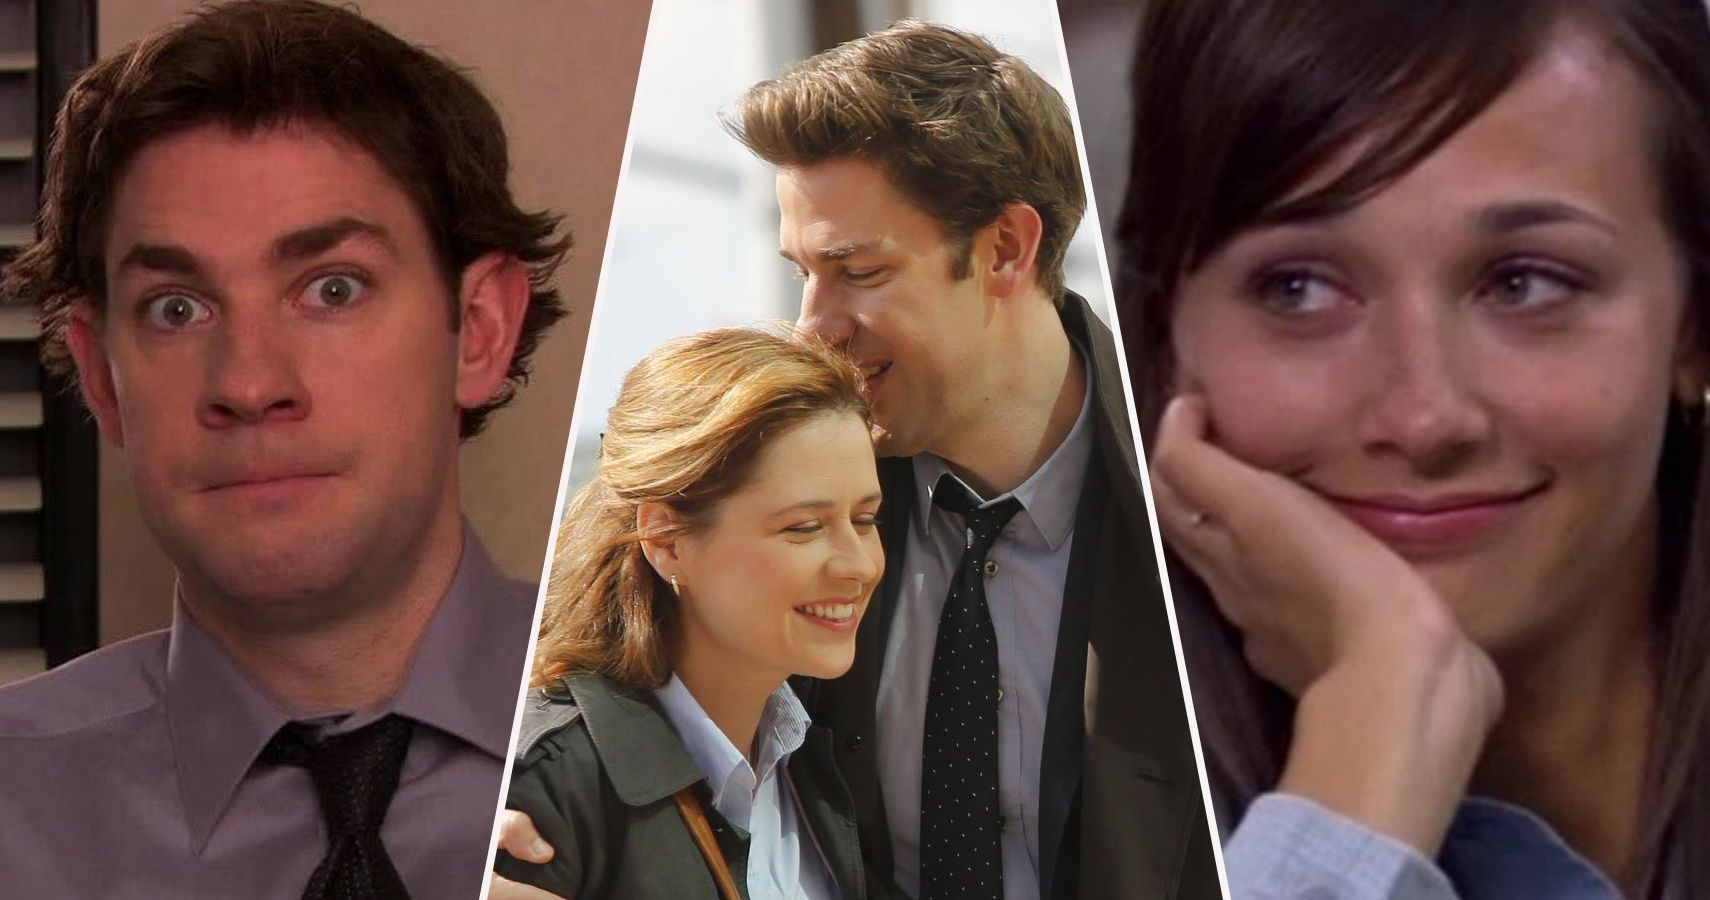 The Office: 20 Wild Revelations About Jim And Karen's Relationship